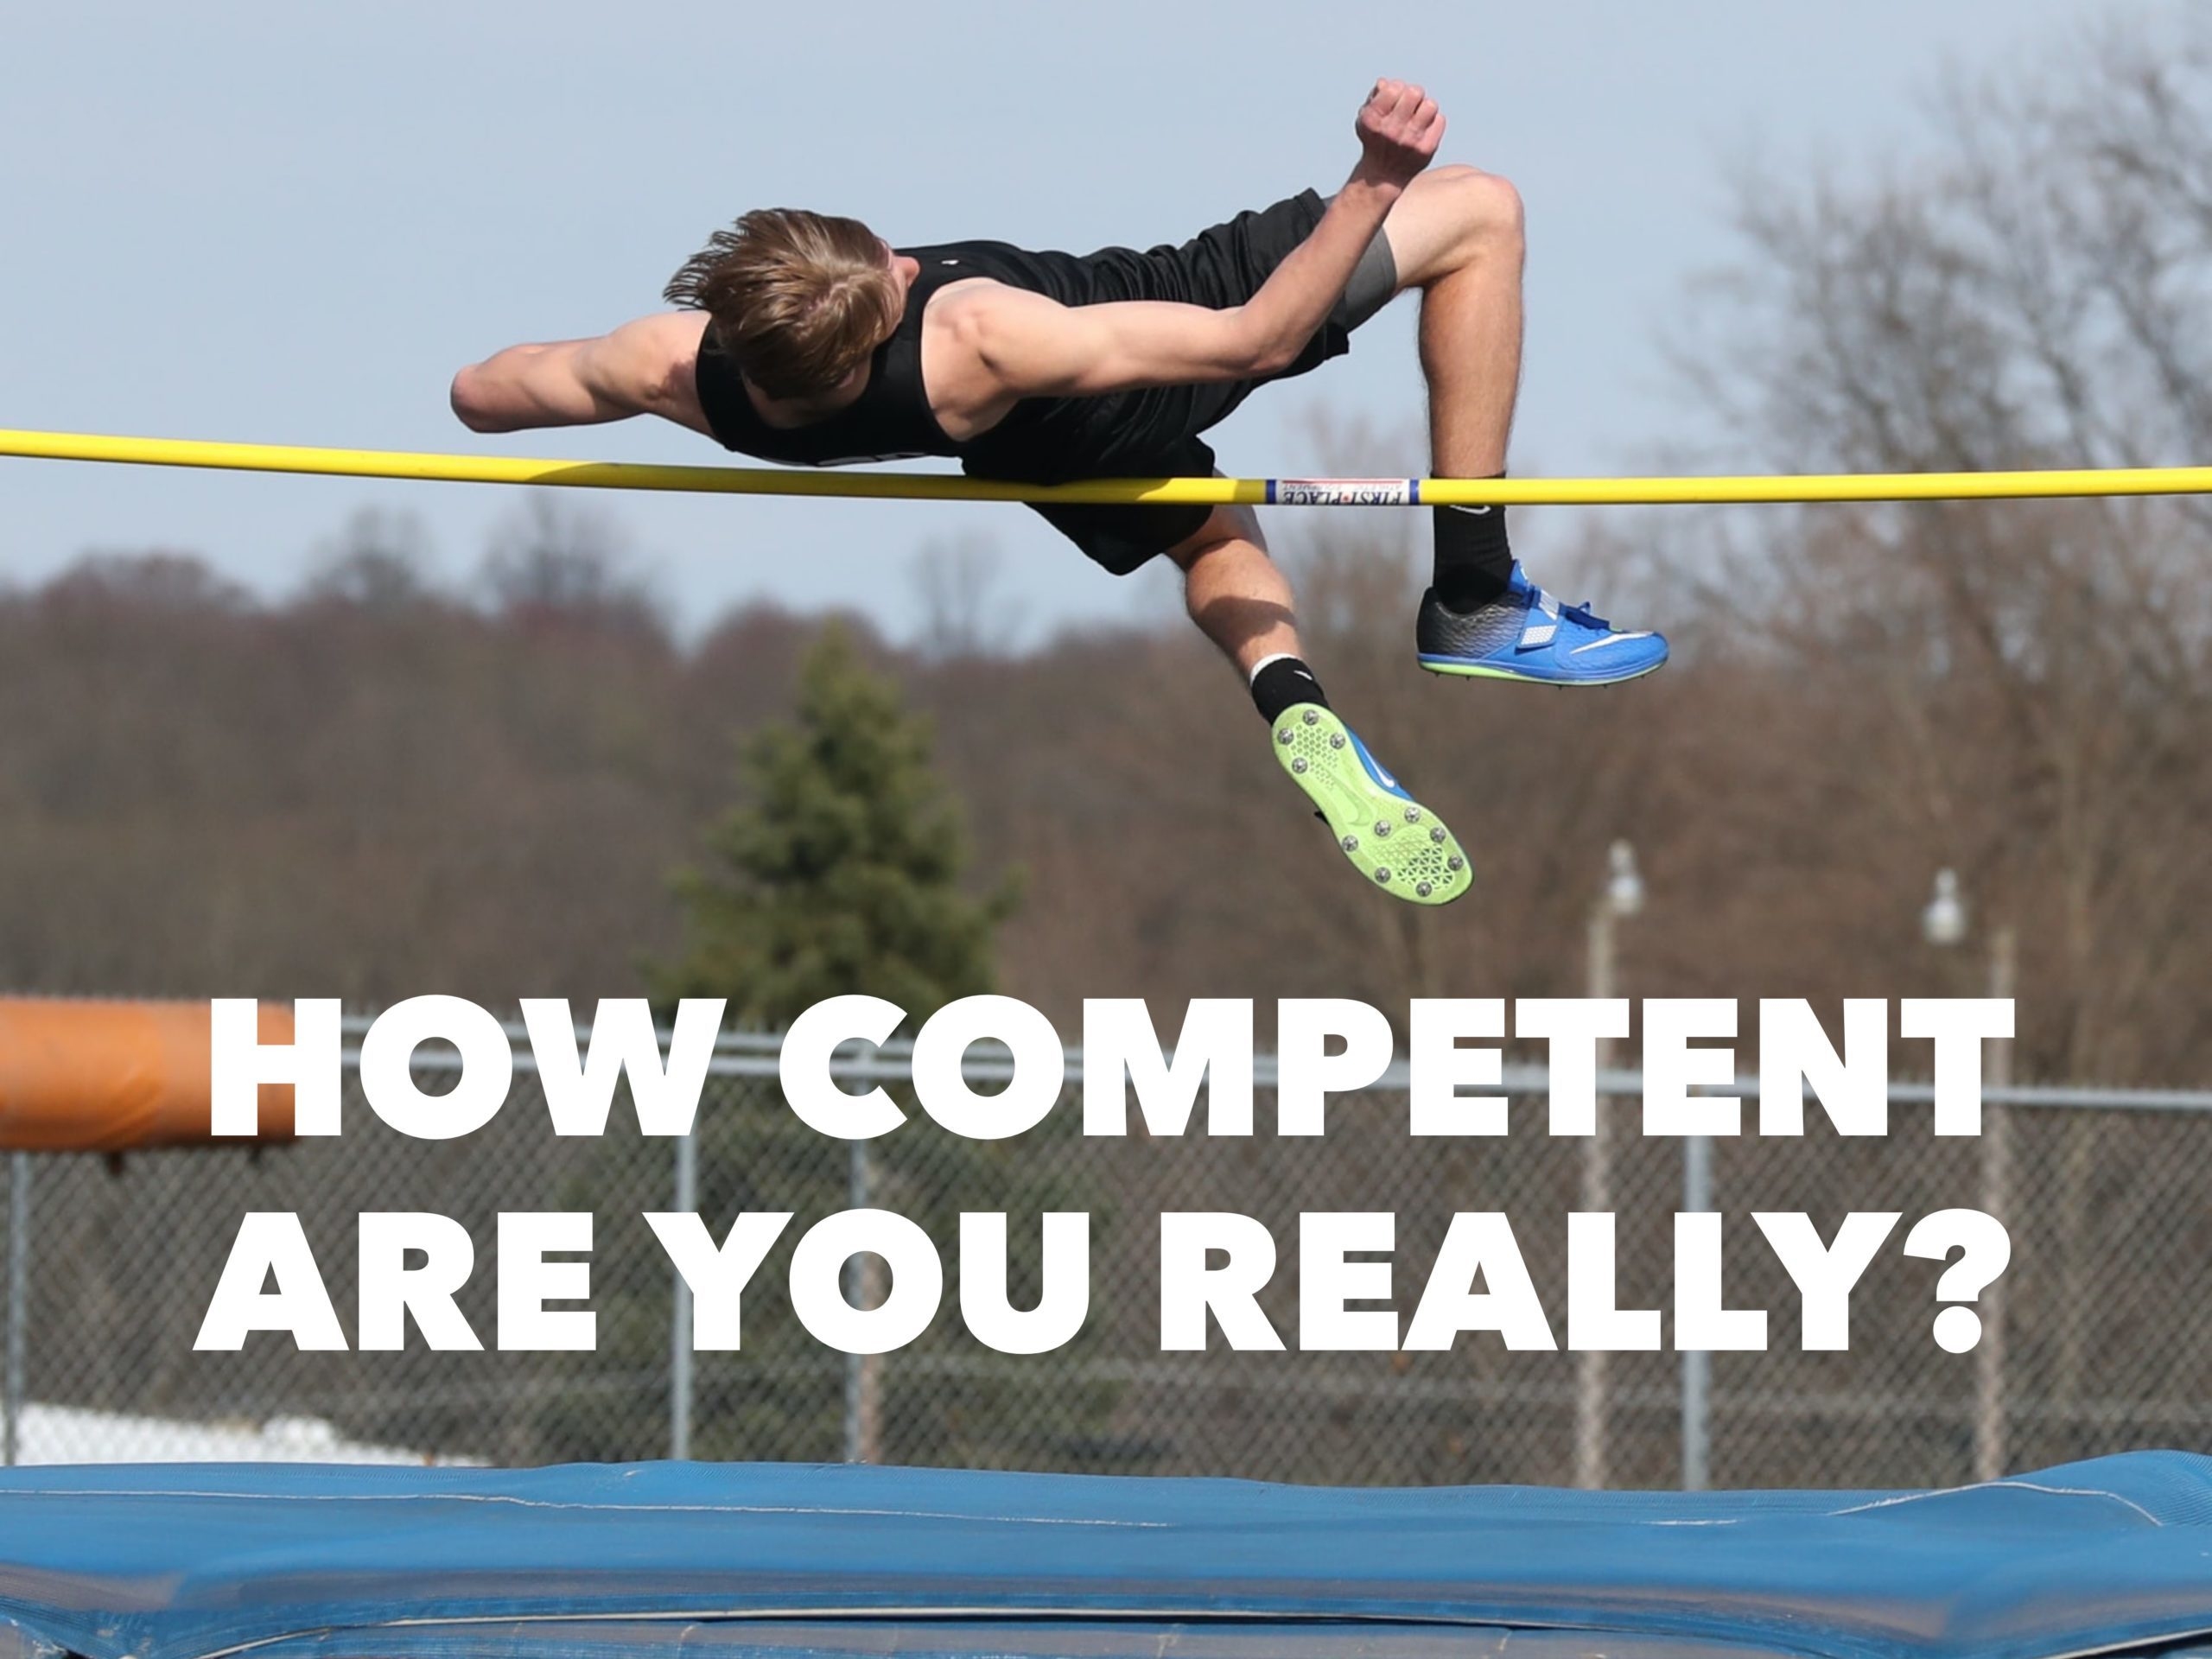 How Competent Are You Really?